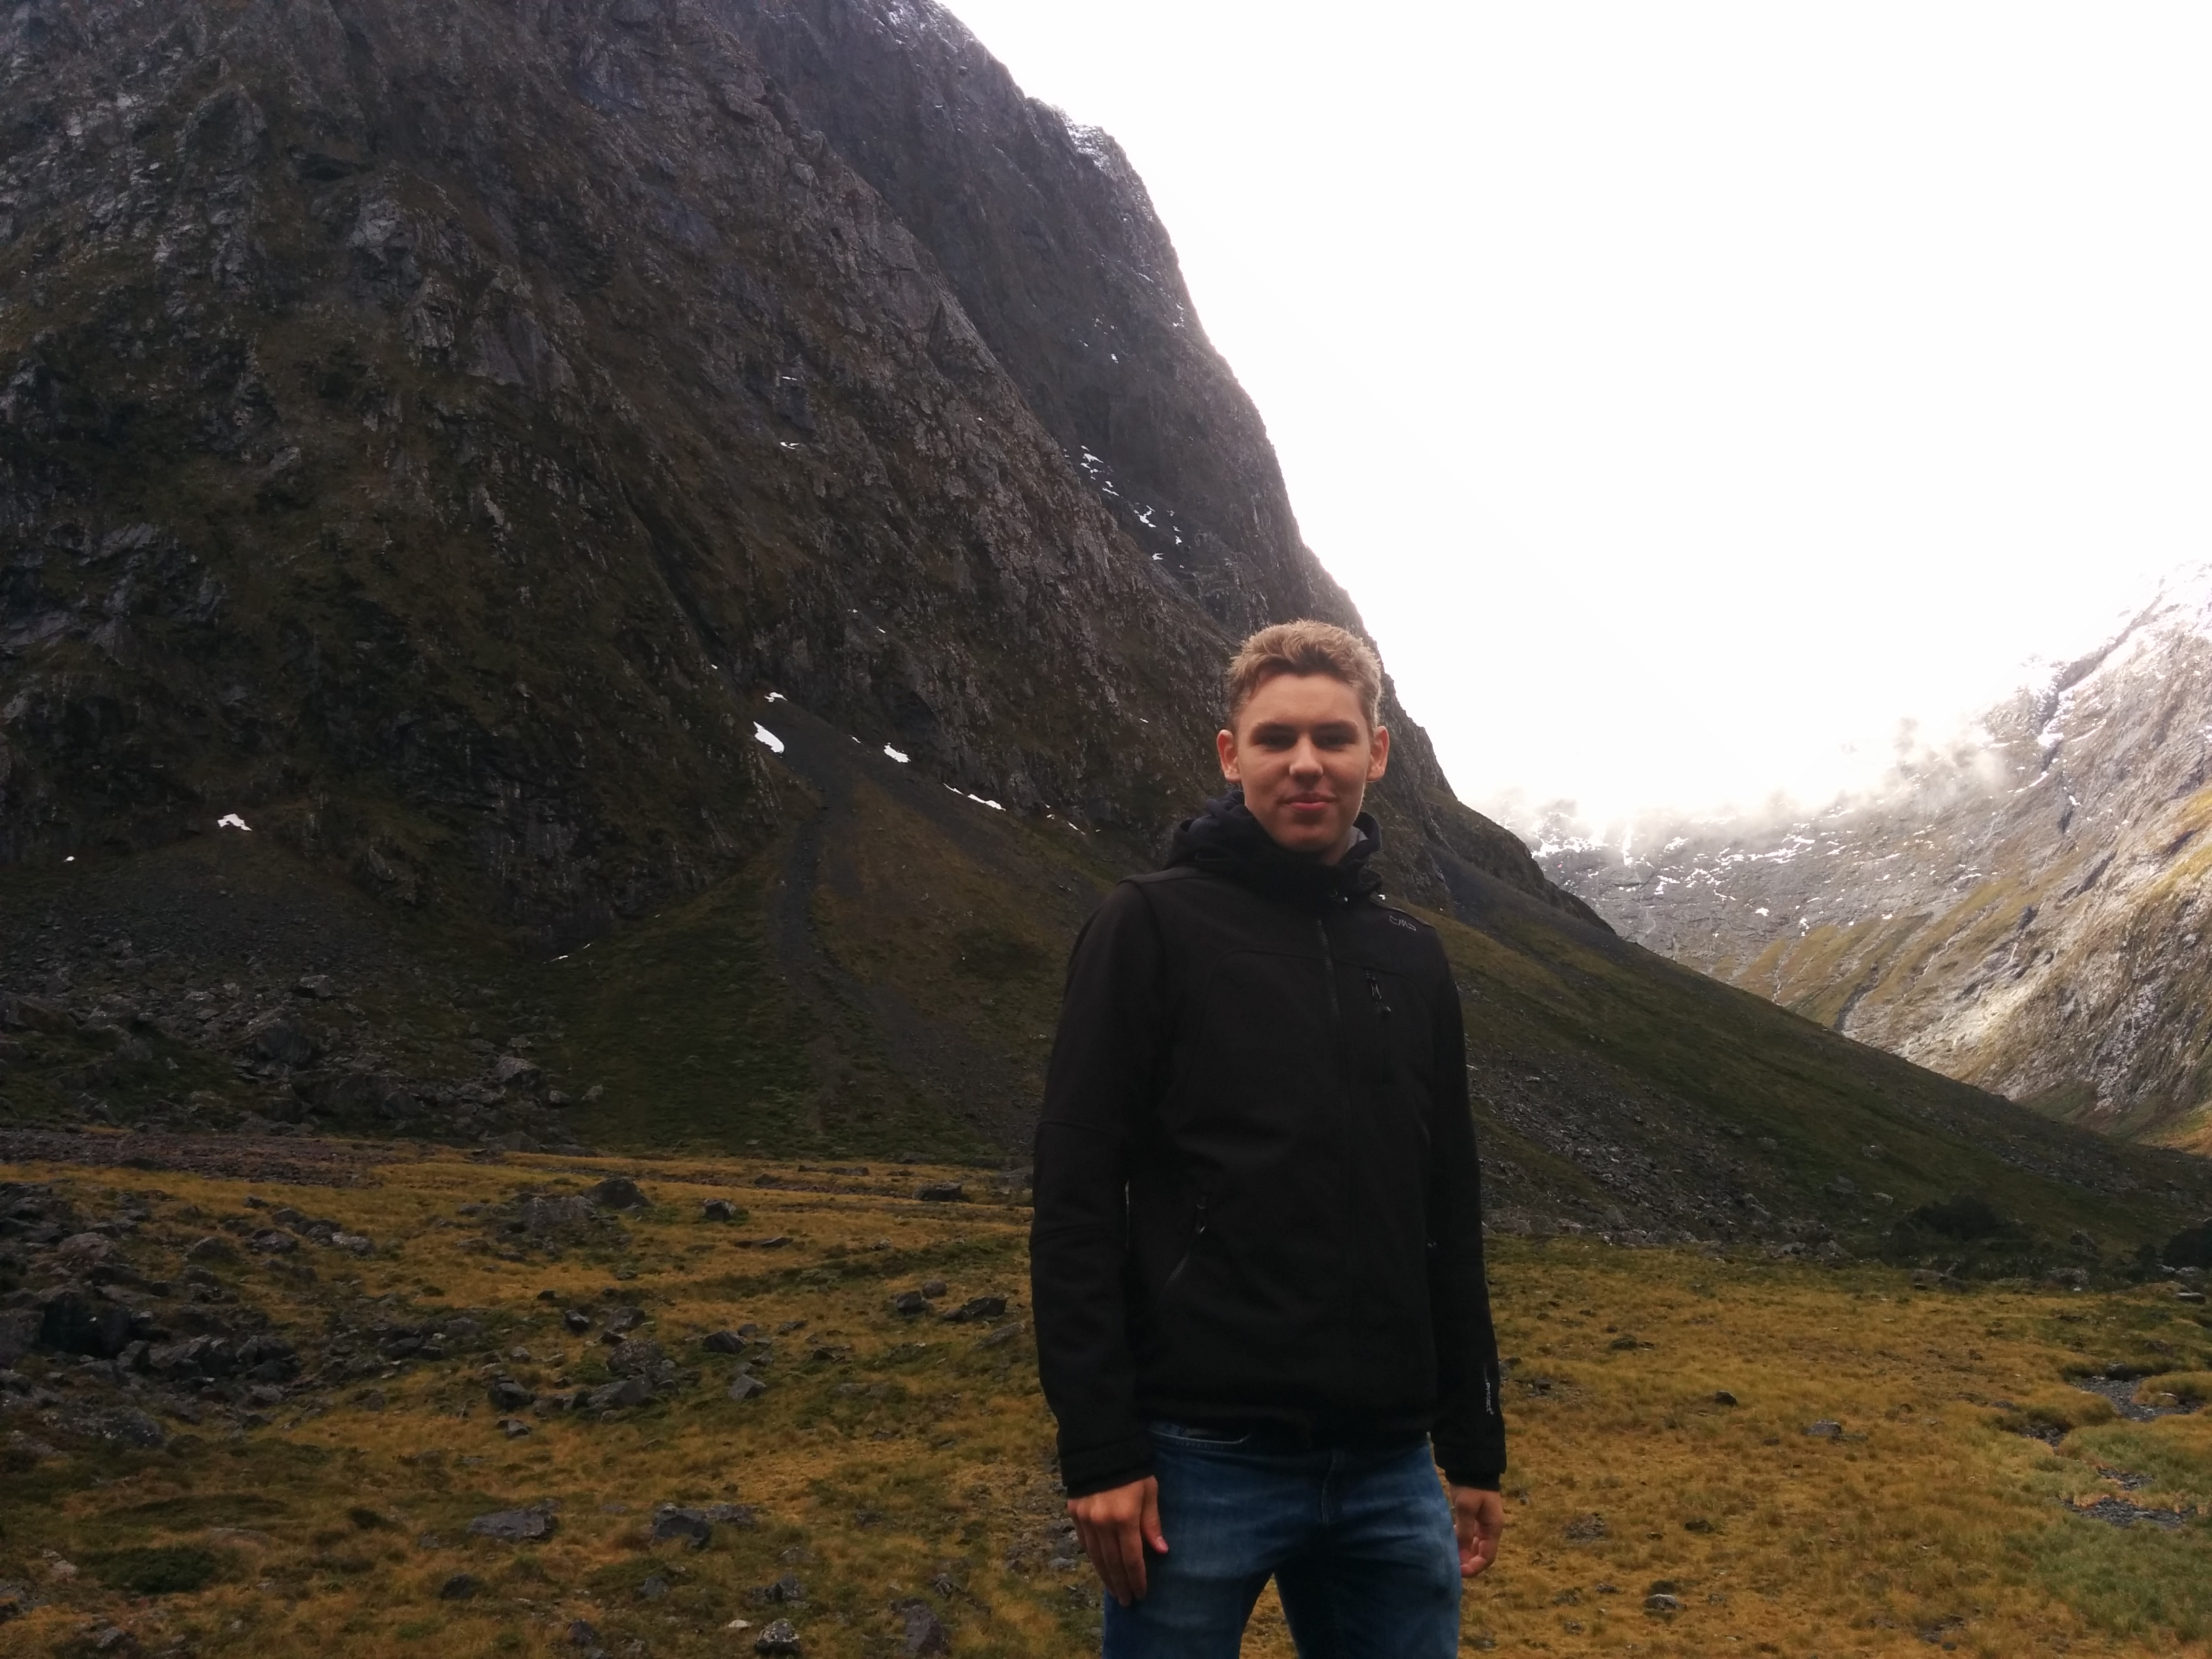 International Student Tours - August Lind Neider